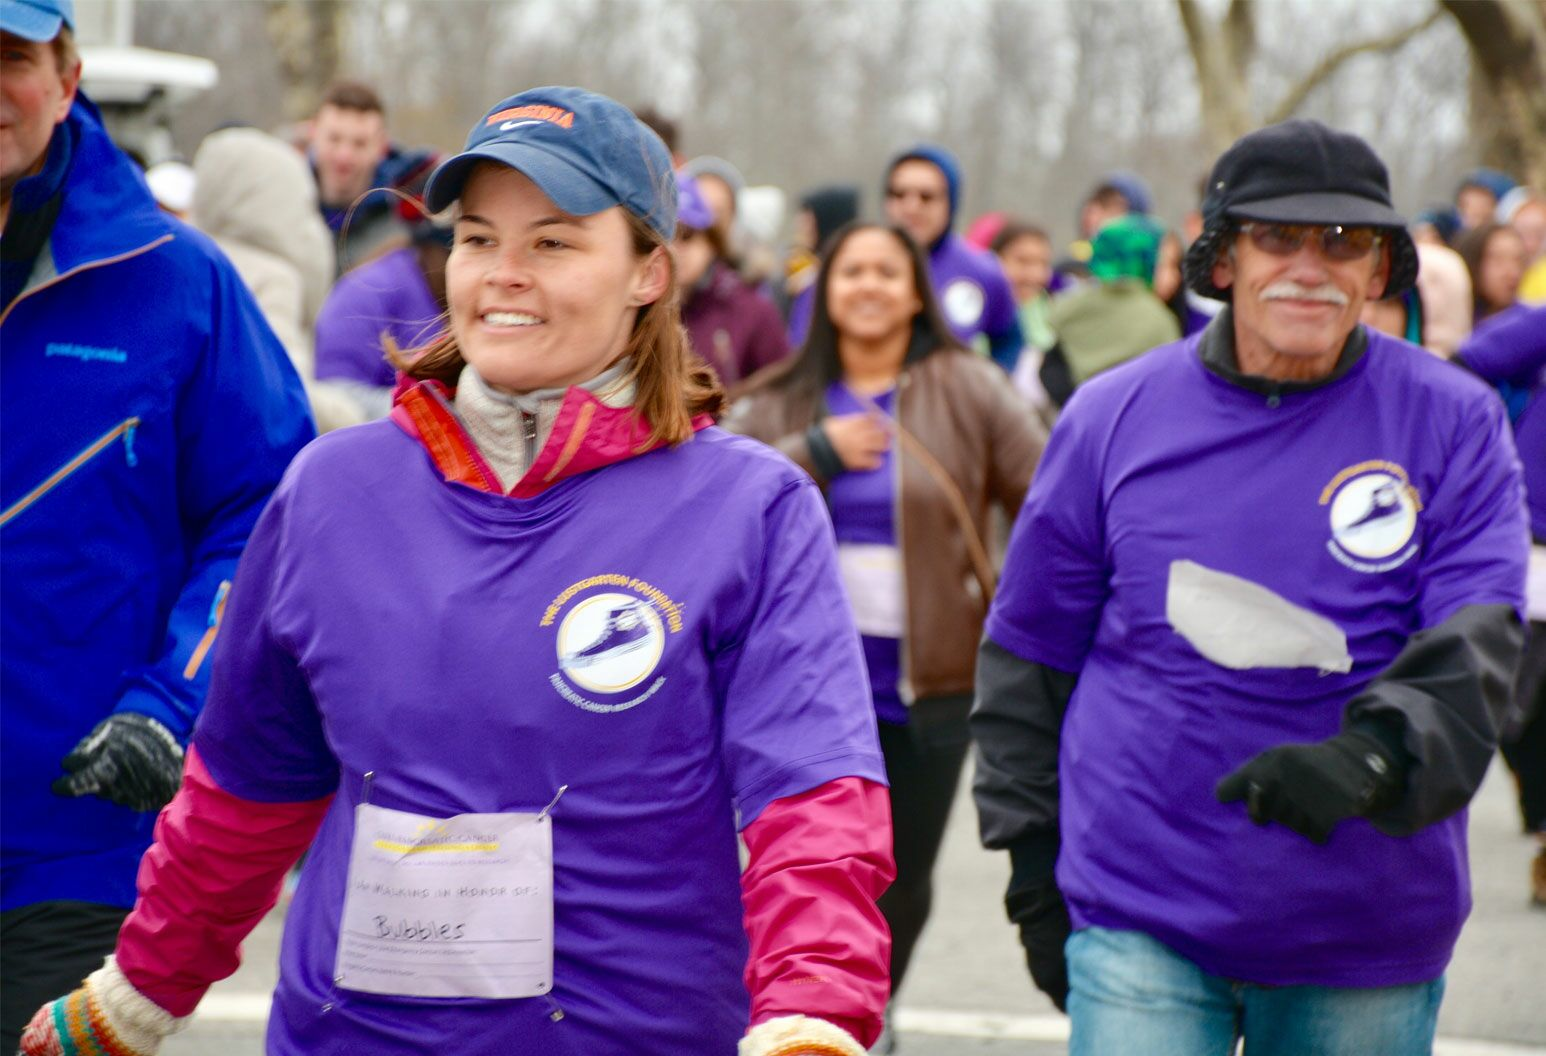 Group of people in purple shirts walking for an event